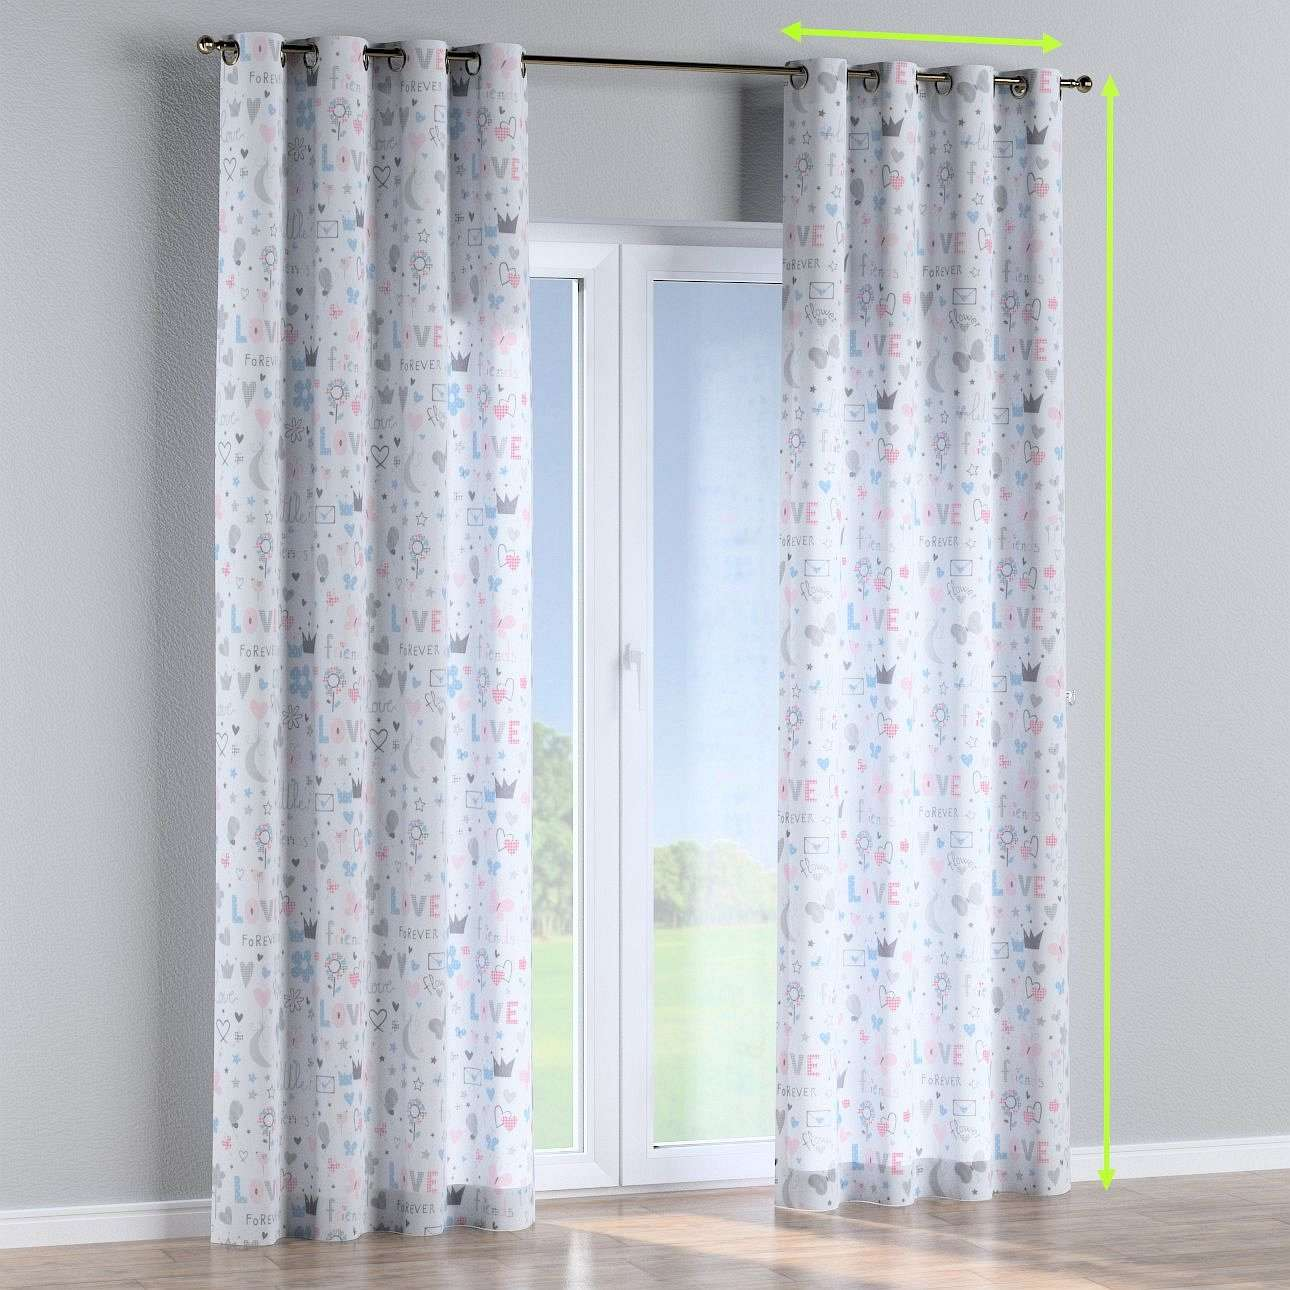 Eyelet lined curtains in collection Little World, fabric: 141-27